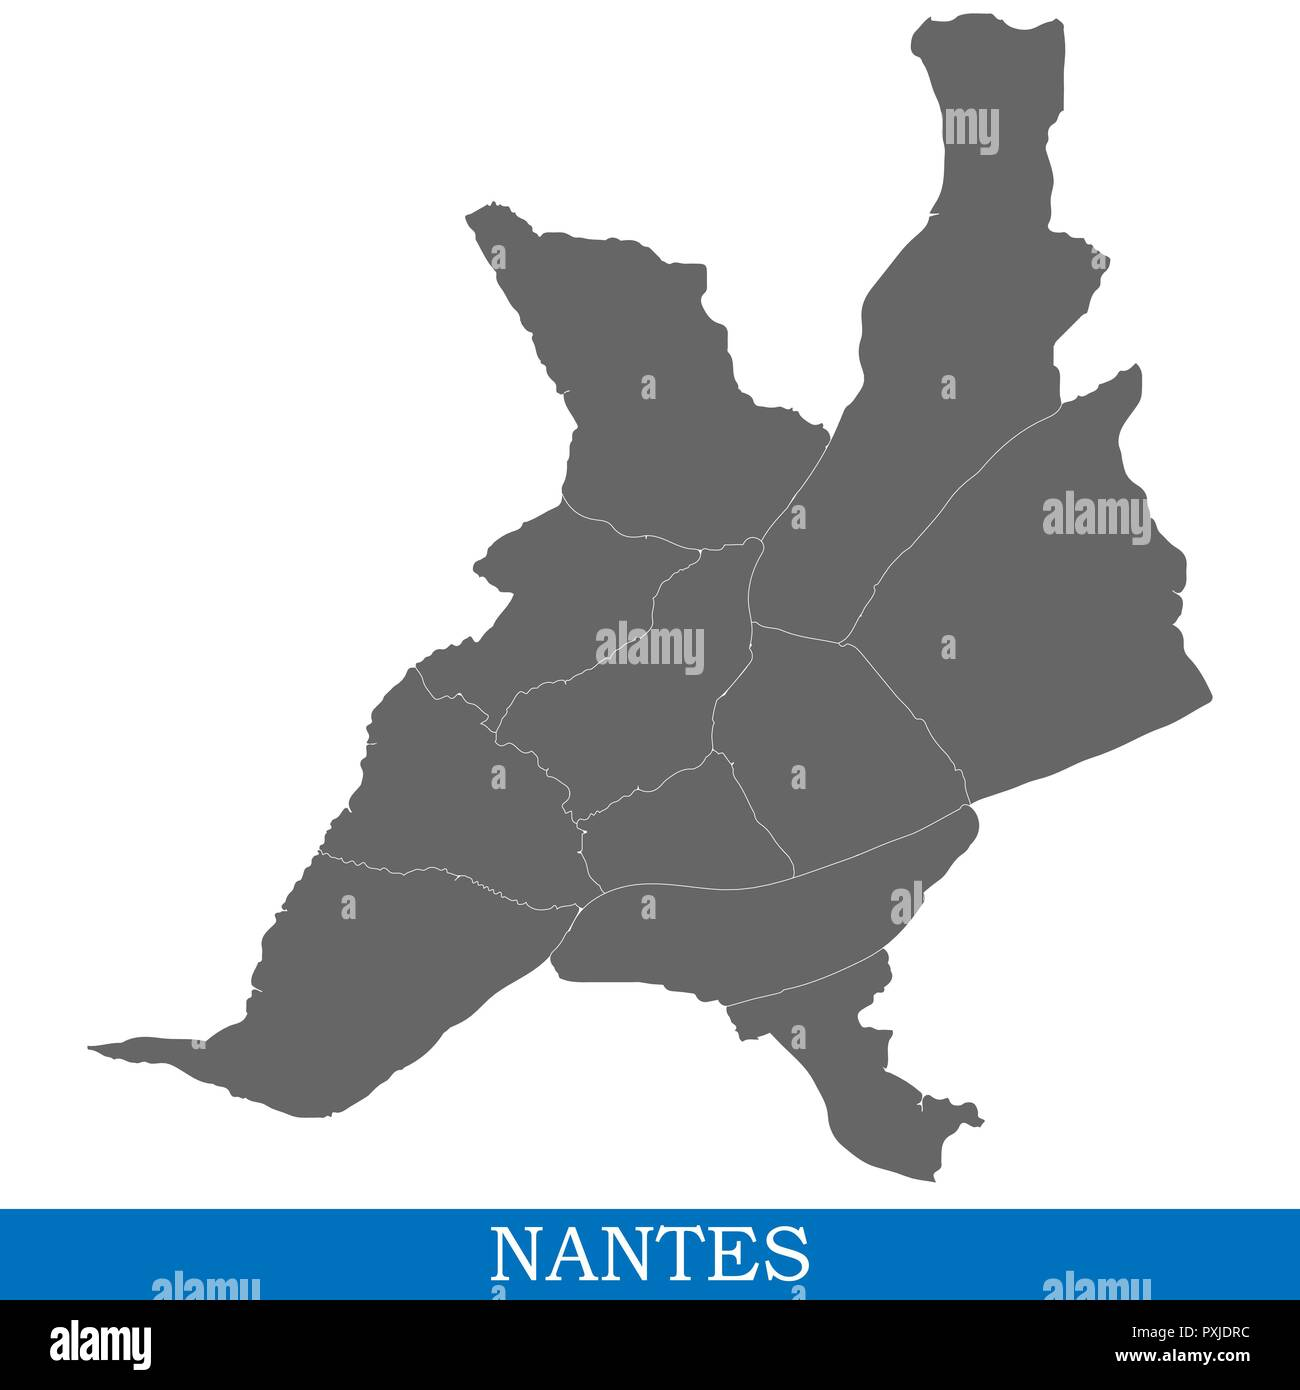 Map Of France Nantes.High Quality Map Of Nantes Is A City Of France With Borders Of